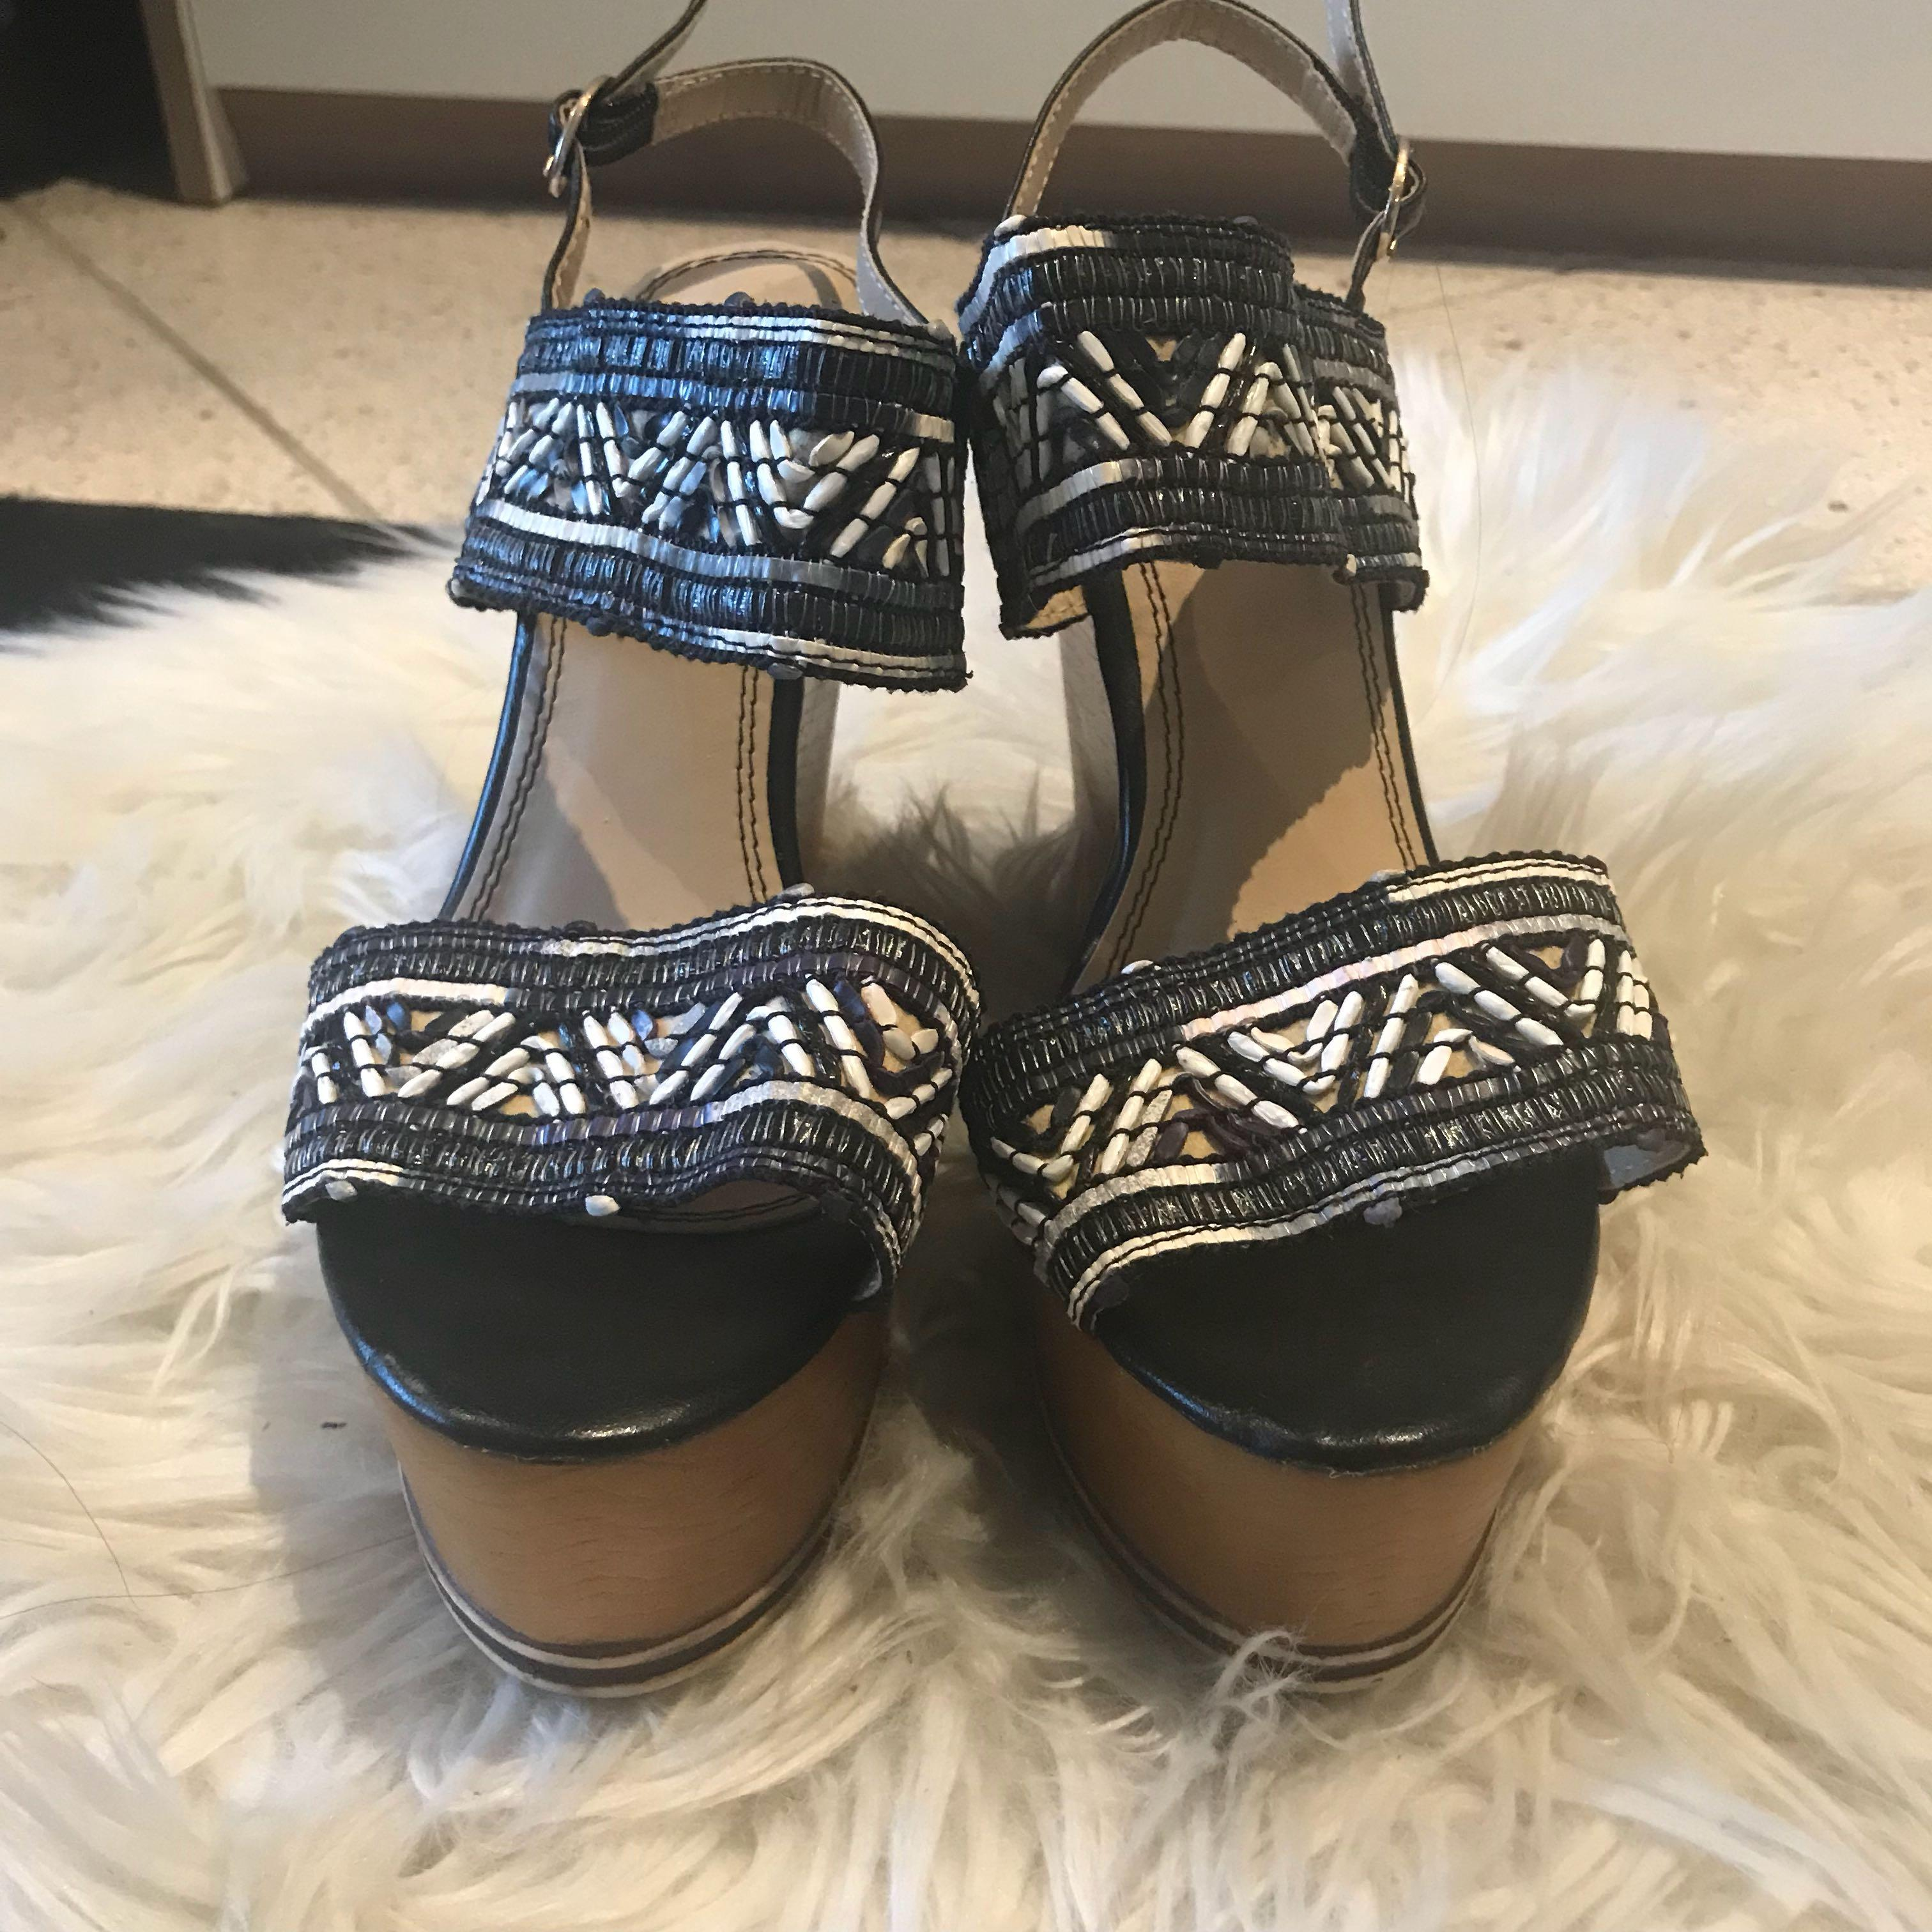 Pearl embroidered strappy wedges - sz 7 - never worn